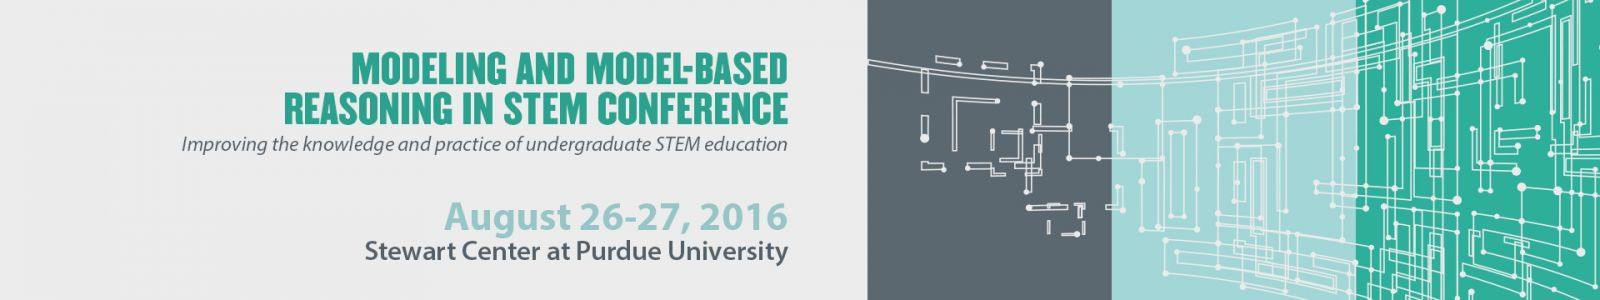 Modeling and Model-Based Reasoning in STEM Conference